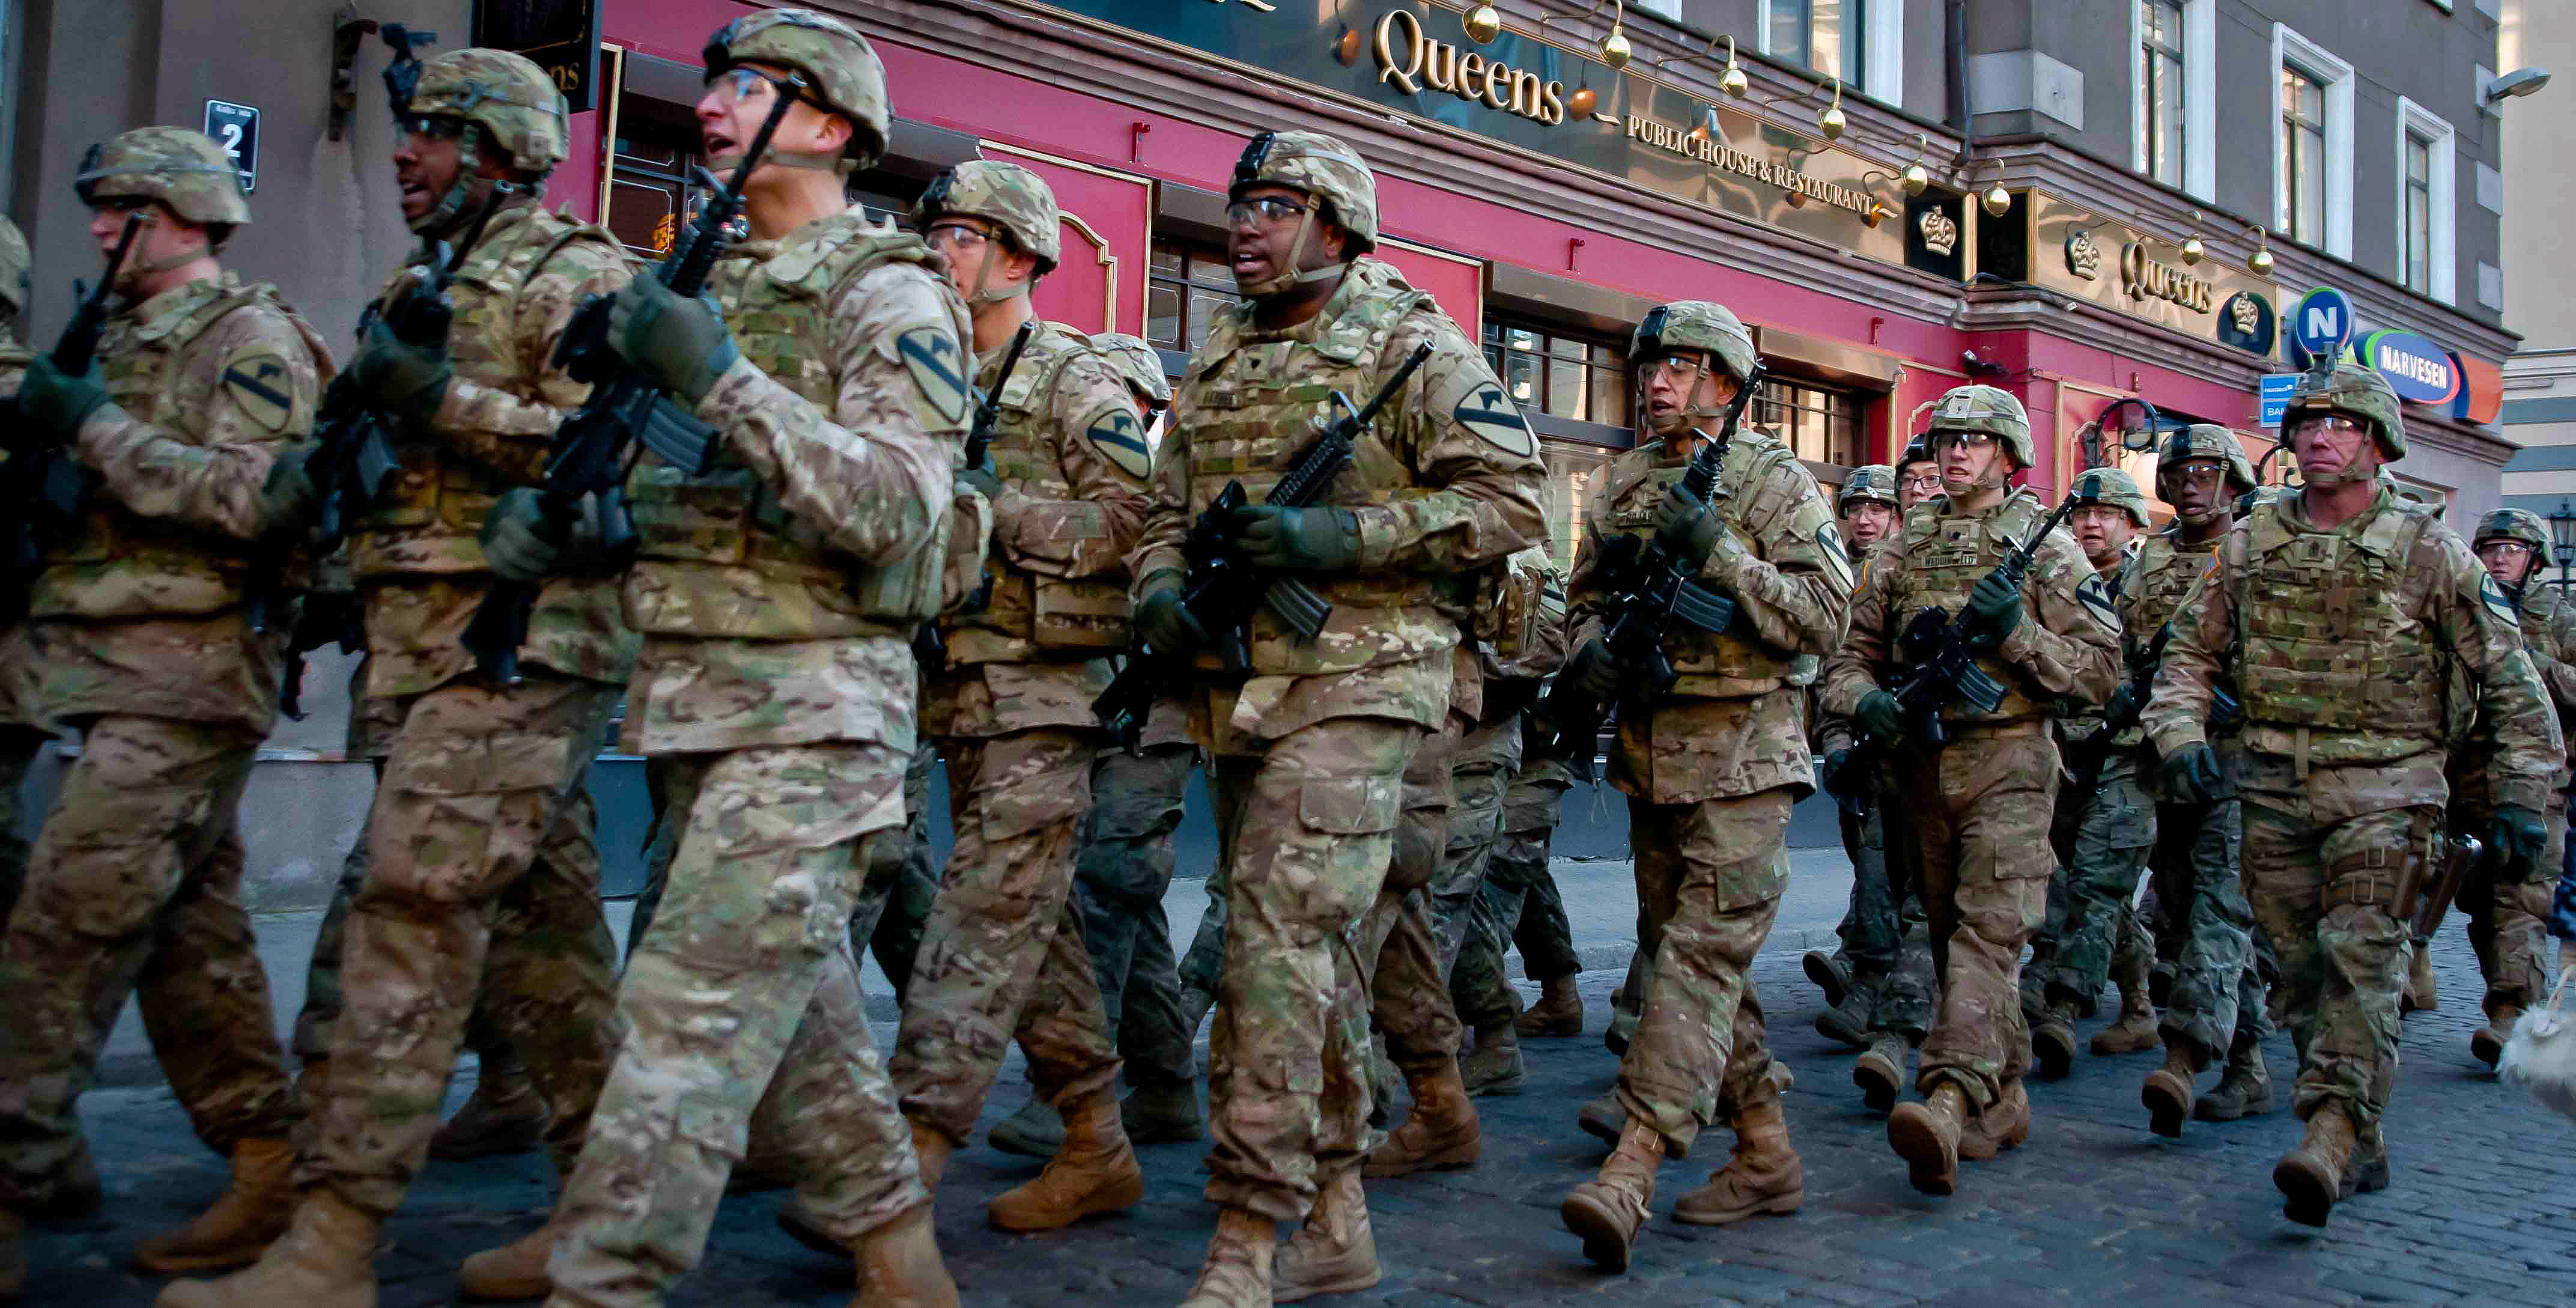 Soldiers from A Company, 2nd Battalion, 8th Cavalry Regiment, 1st Brigade Combat Team, 1st Cavalry Division call cadance as they march through the streets of old Riga as part of the Latvia Day parade that took place in November. The U.S. soldiers participated in the event as part of the U.S. Army Europe-led Operation Atlantic Resolve land force assurance training taking place across Estonia, Latvia, Lithuania and Poland to enhance multinational interoperability, strengthen relationships among allied militaries, contribute to regional stability and demonstrate U.S. commitment to NATO. (Photo by Sgt. 1st Class Jeremy J. Fowler)